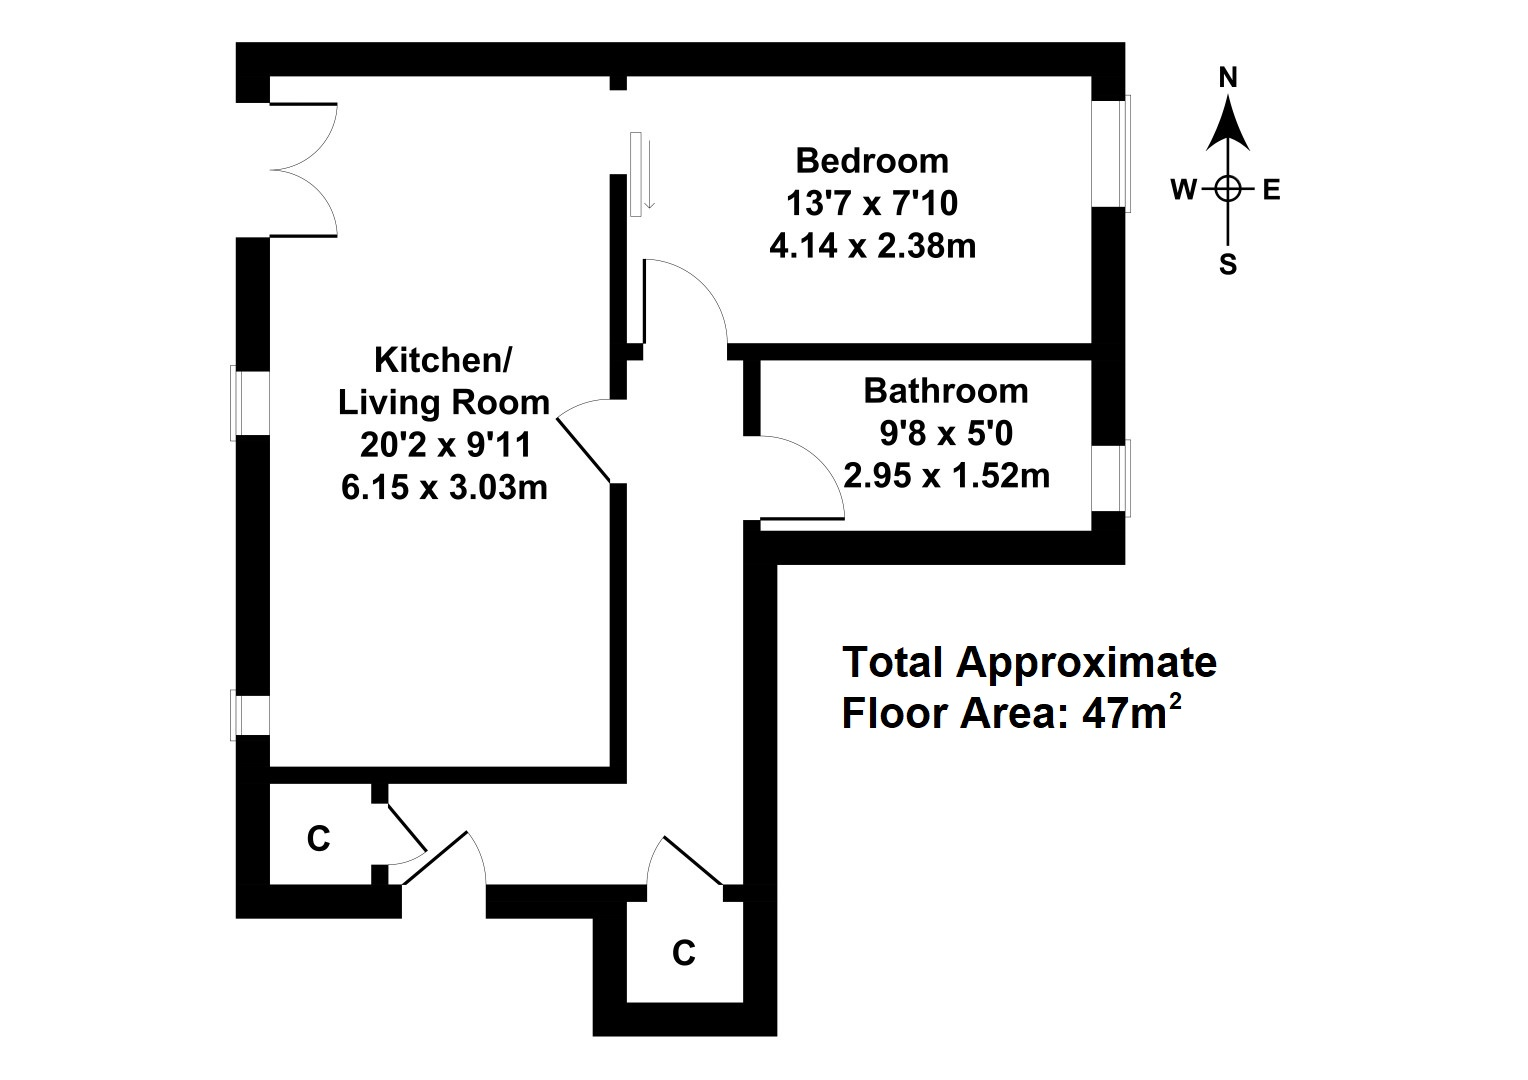 Floorplan 1 of 4/2, Cowgatehead, Old Town, Edinburgh, EH1 1JU